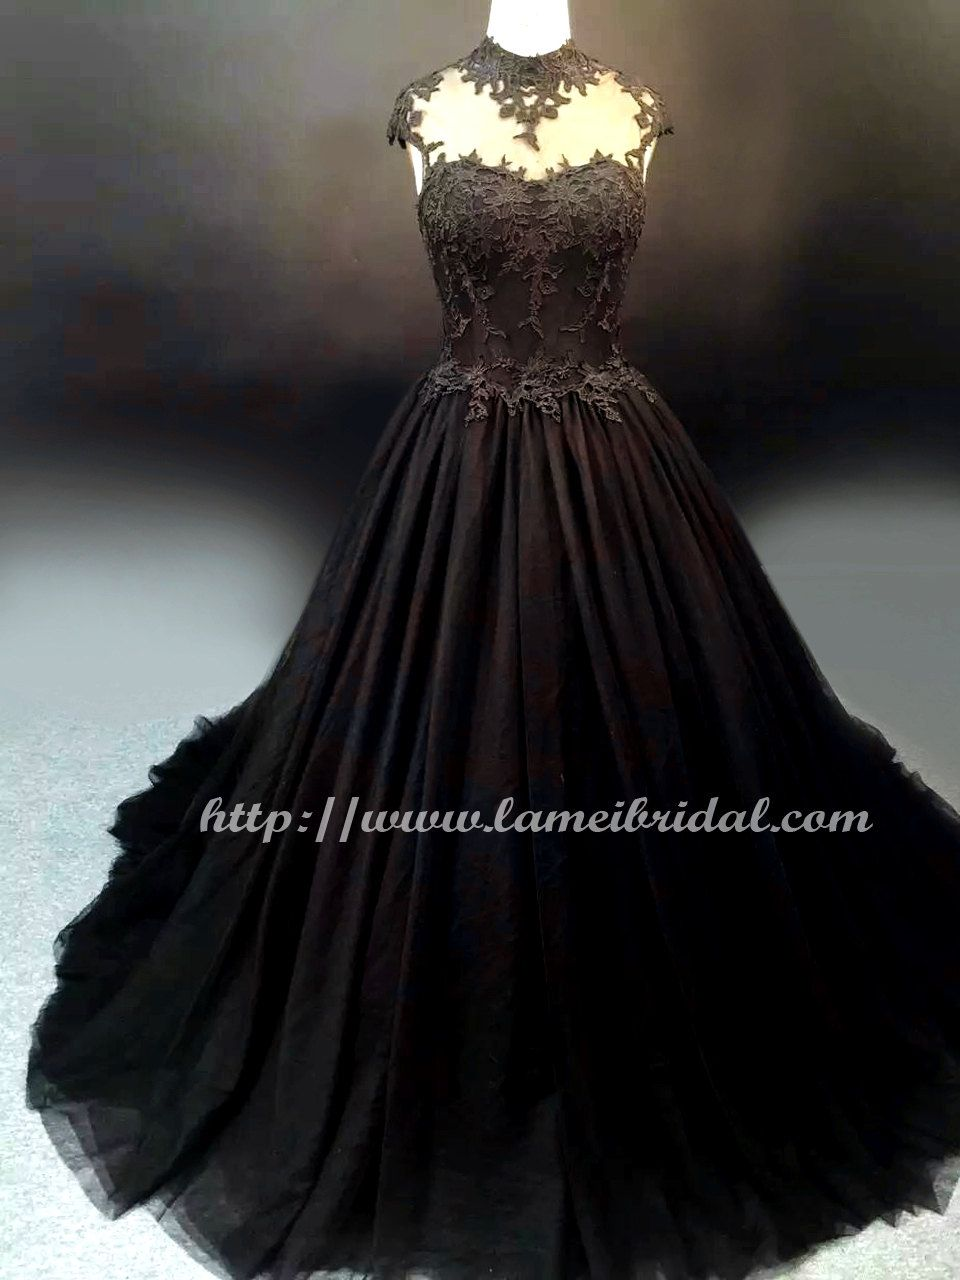 Black and white gothic wedding dresses  Goth Style Black Lace High Neck Wedding Bridal Dress Ball Gown